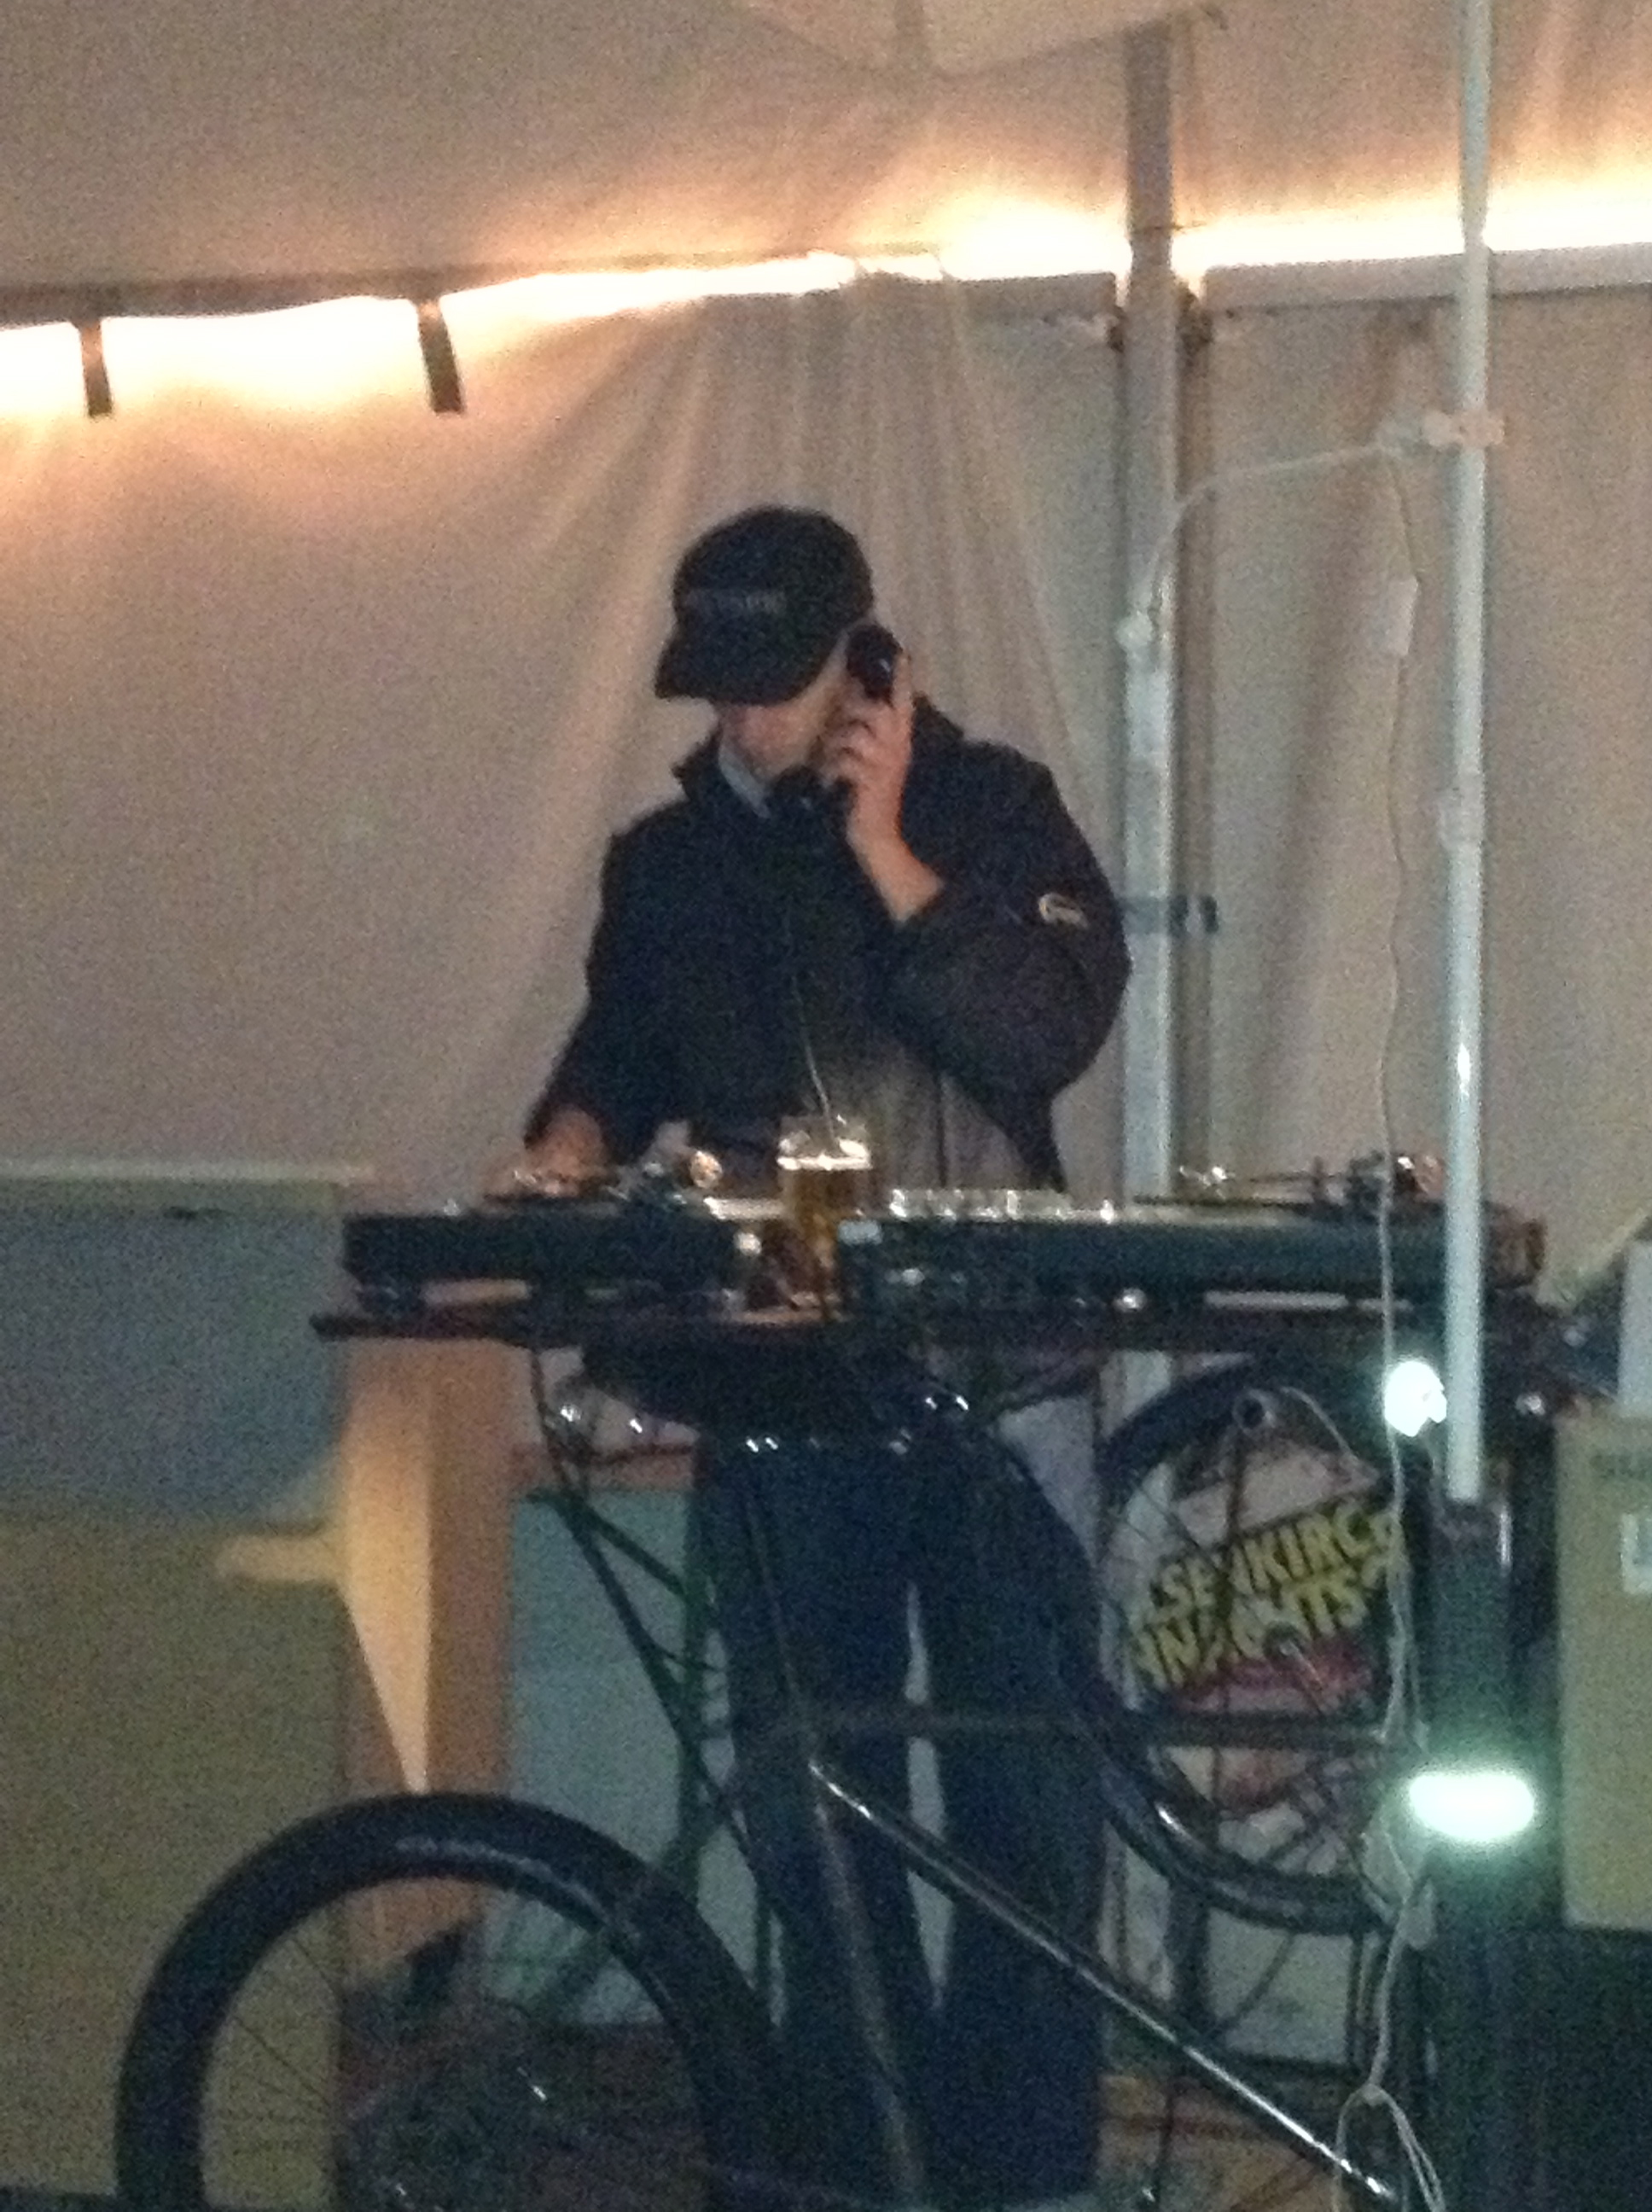 including the BEST DJ OF ALL TIME. Srsly this DJ was amazing. Just check out his bike-DJ set-up, and his telephone instead of headphones. Baller 9000.